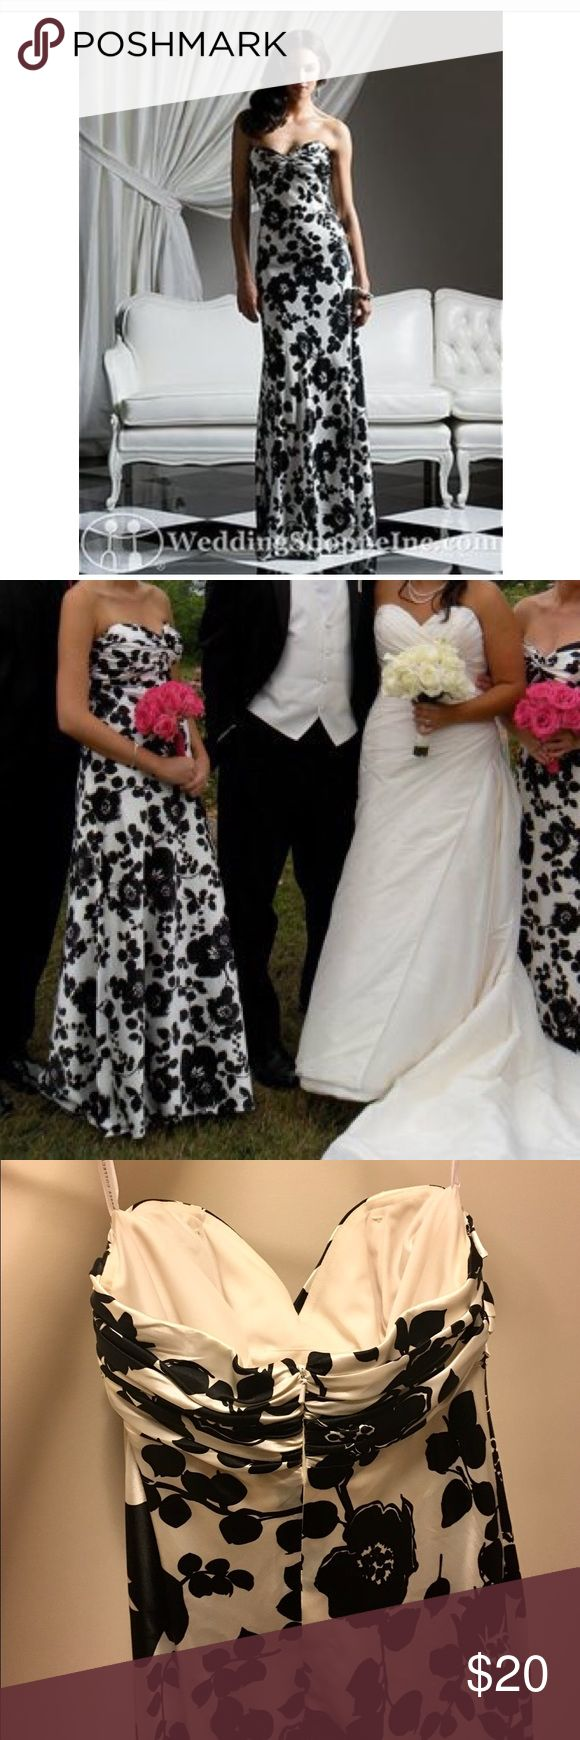 Black and white strapless dress Dessy bridesmaid dress in a gorgeous black and white floral pattern called Melrose. Size 10L but I had it altered to fit tight across the bust so it wears more like an 8. Gorgeous for any formal occasion! Dresses Strapless